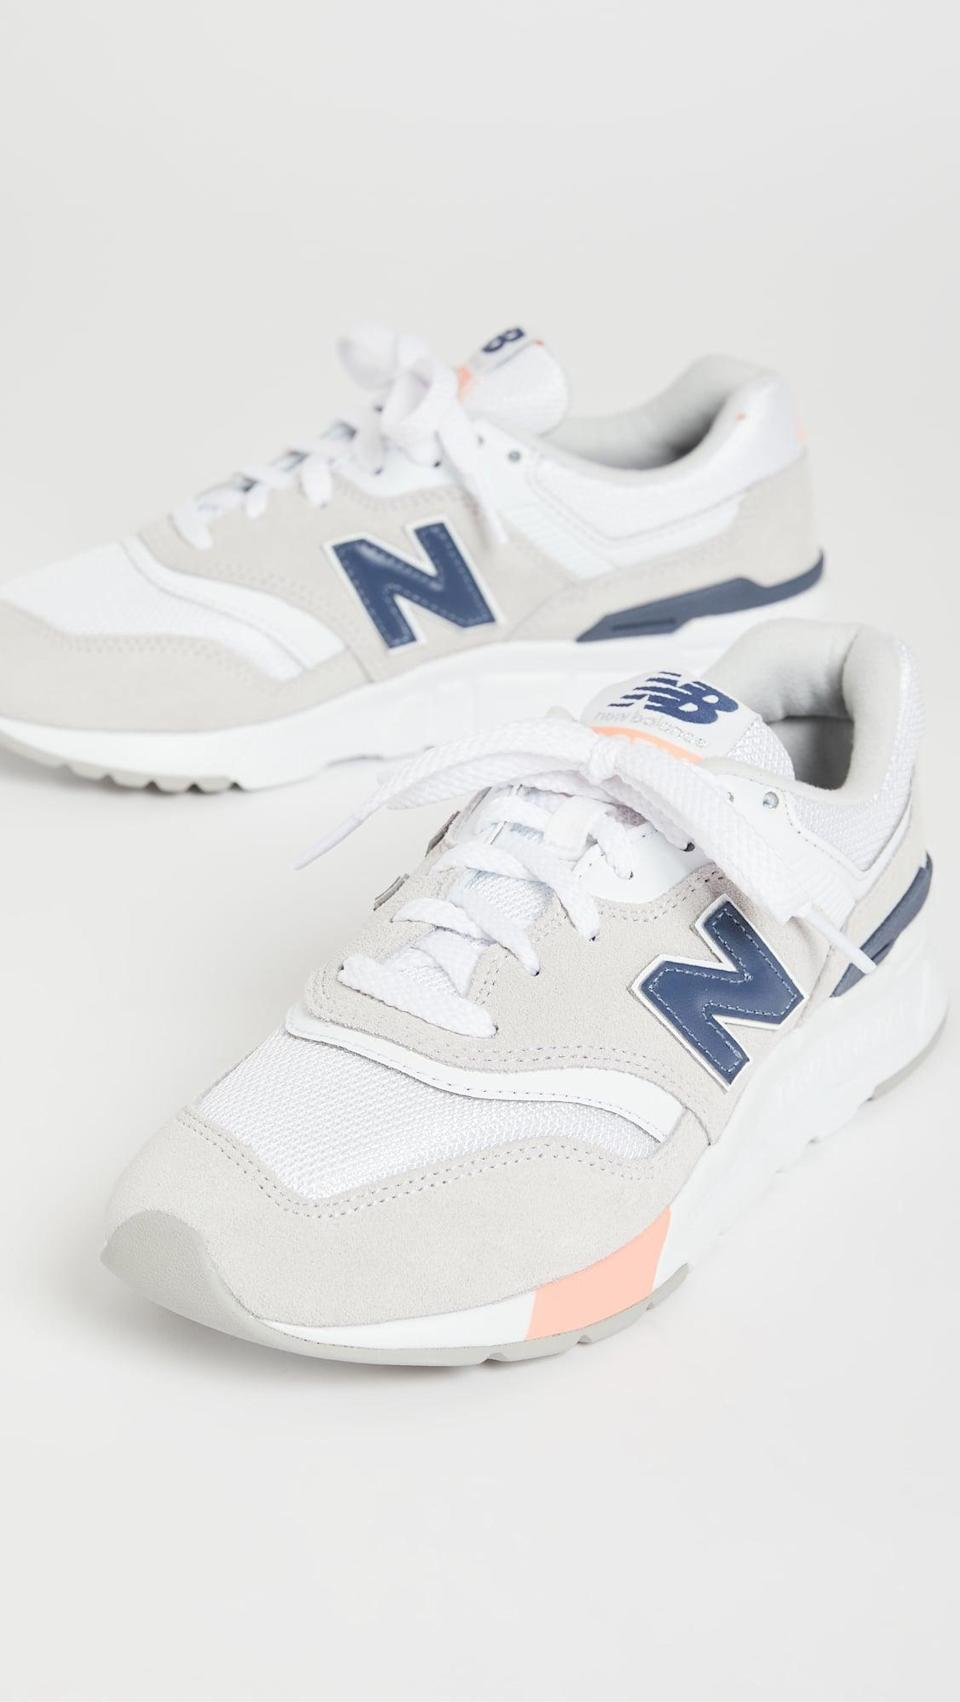 "<p><span>New Balance 997 Classic Sneakers</span> ($90)</p> <p>""I have a new found love for New Balance sneakers and my pair from last year is totally worn out, so now I have my eye on the 997 sneakers. The cute pink and navy details makes them feel different and fresh. They're perfect to wear with jeans and tee and I know they'll always look cool."" - Krista Jones, associate editor, Shop</p>"